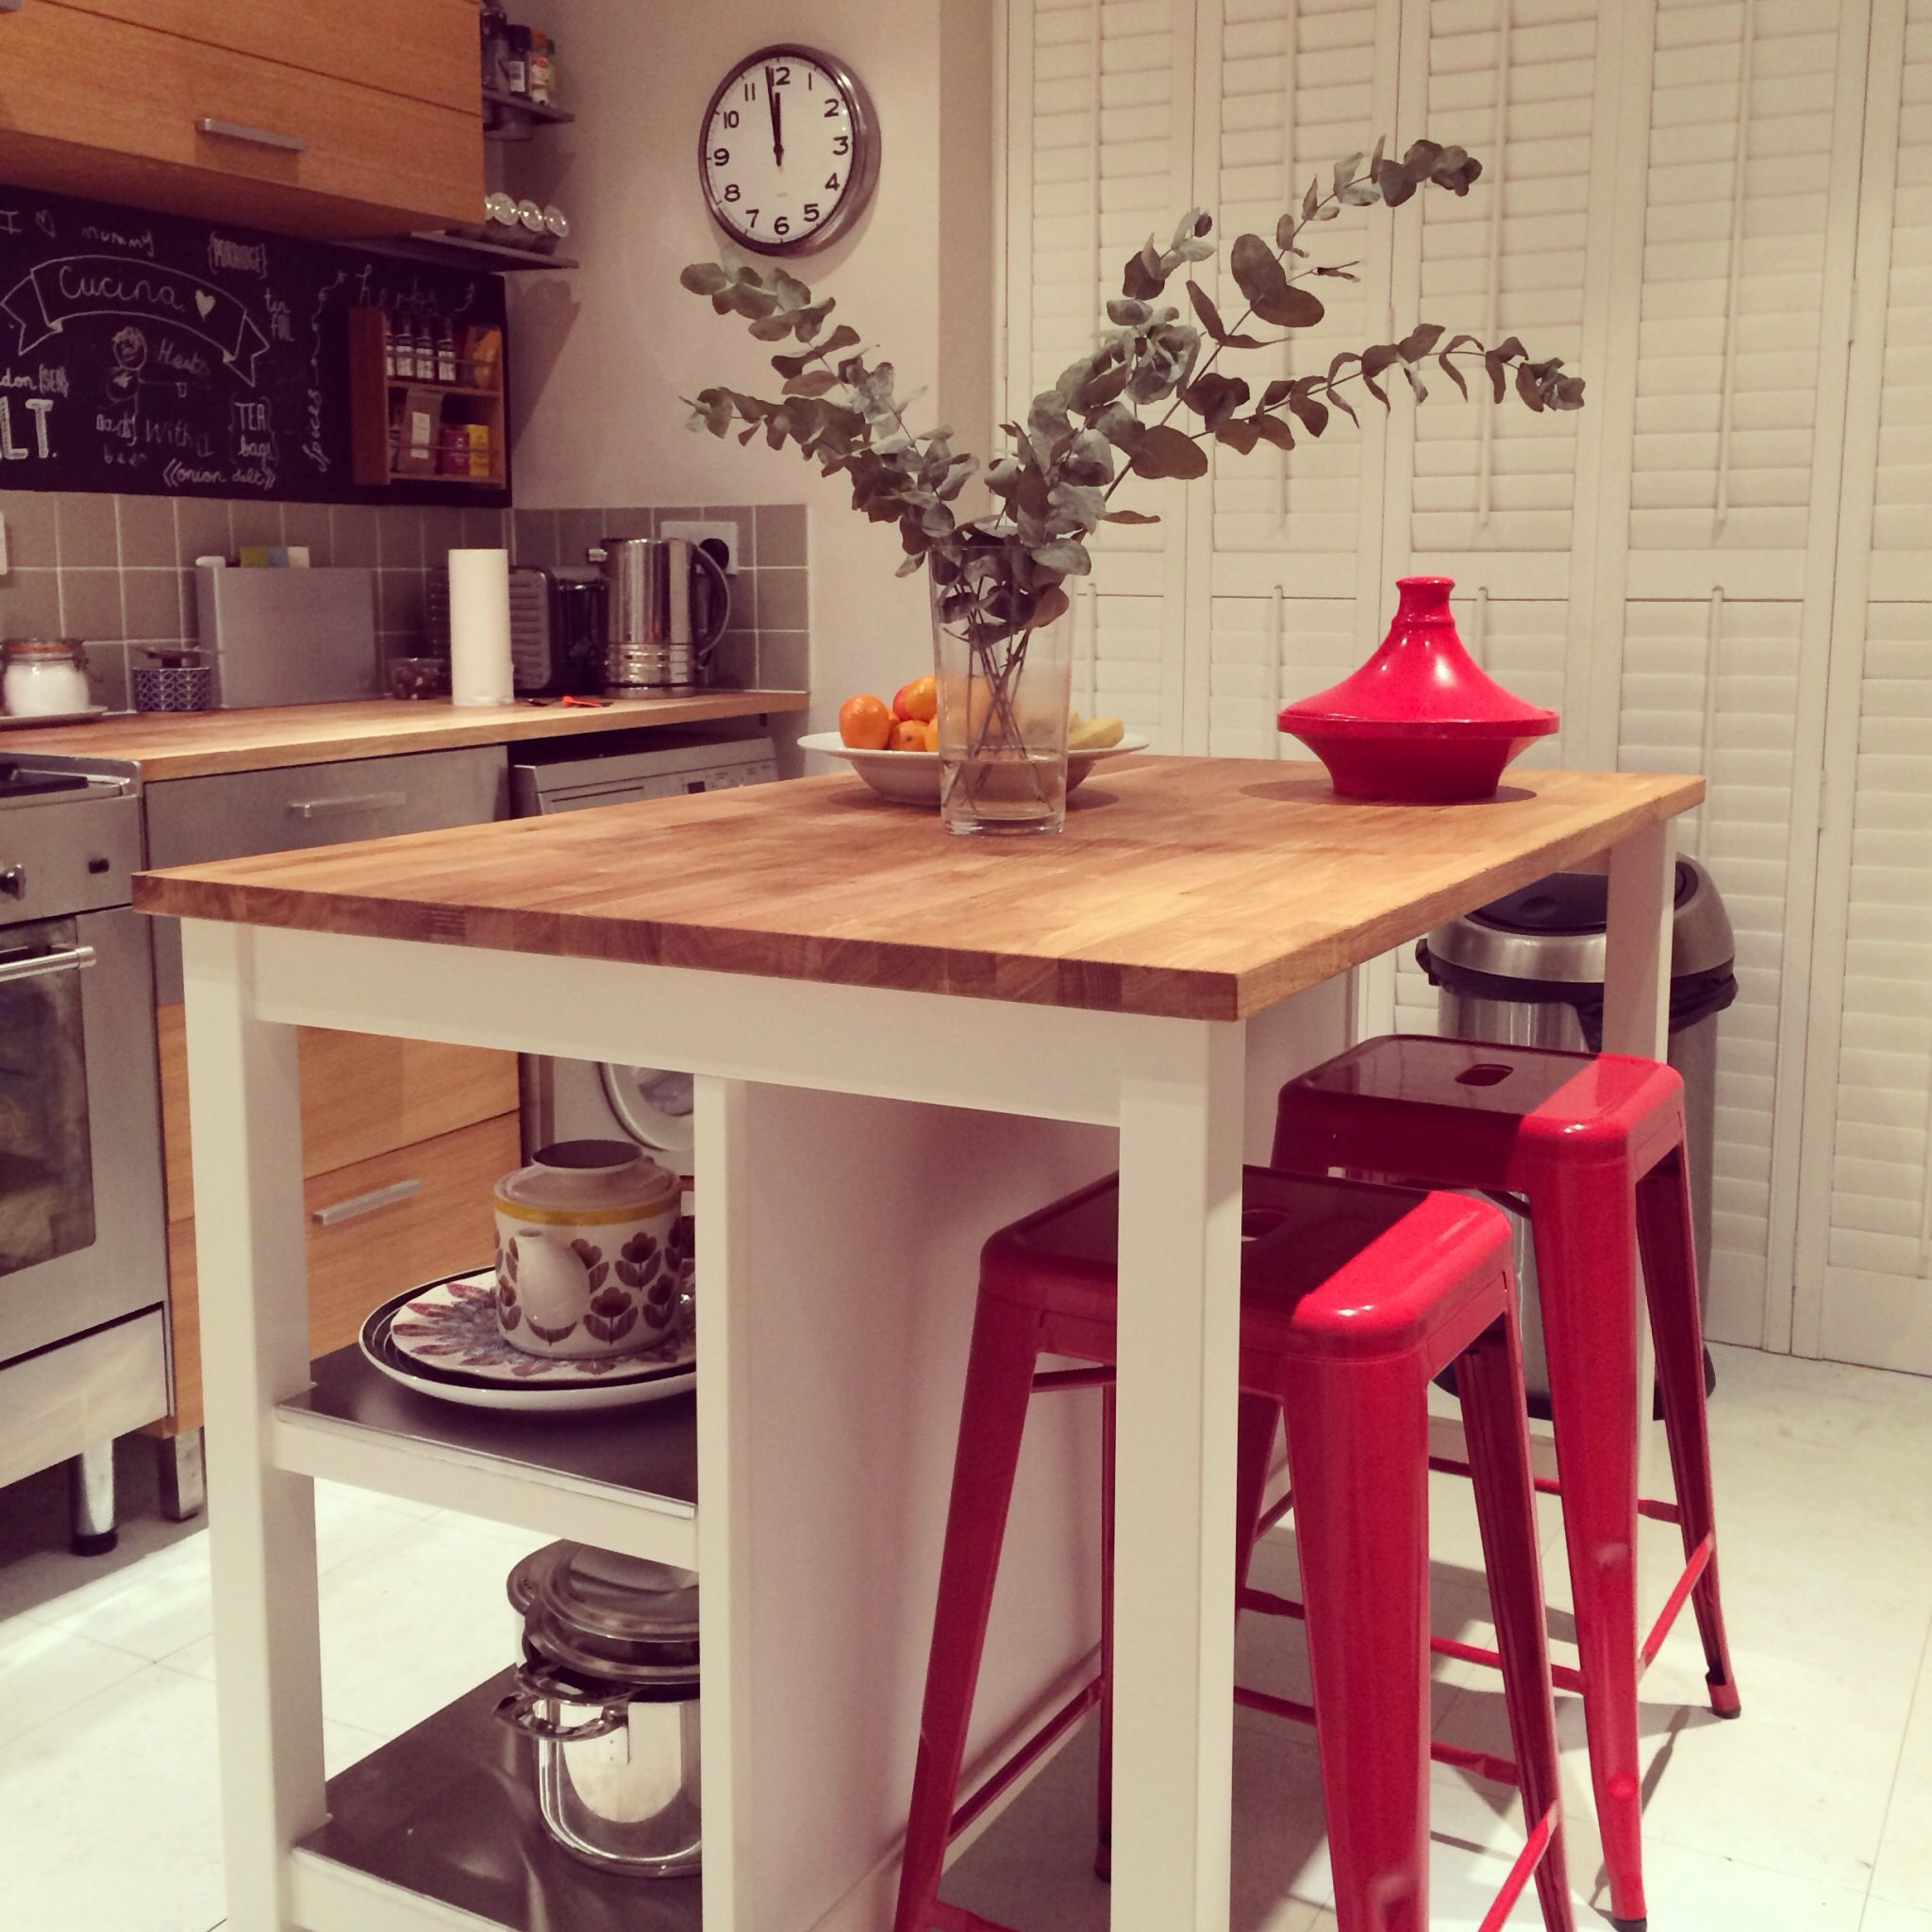 Ilot De Cuisine Et Table Intégrée stenstorp island from ikea with red tolix style chairs. just